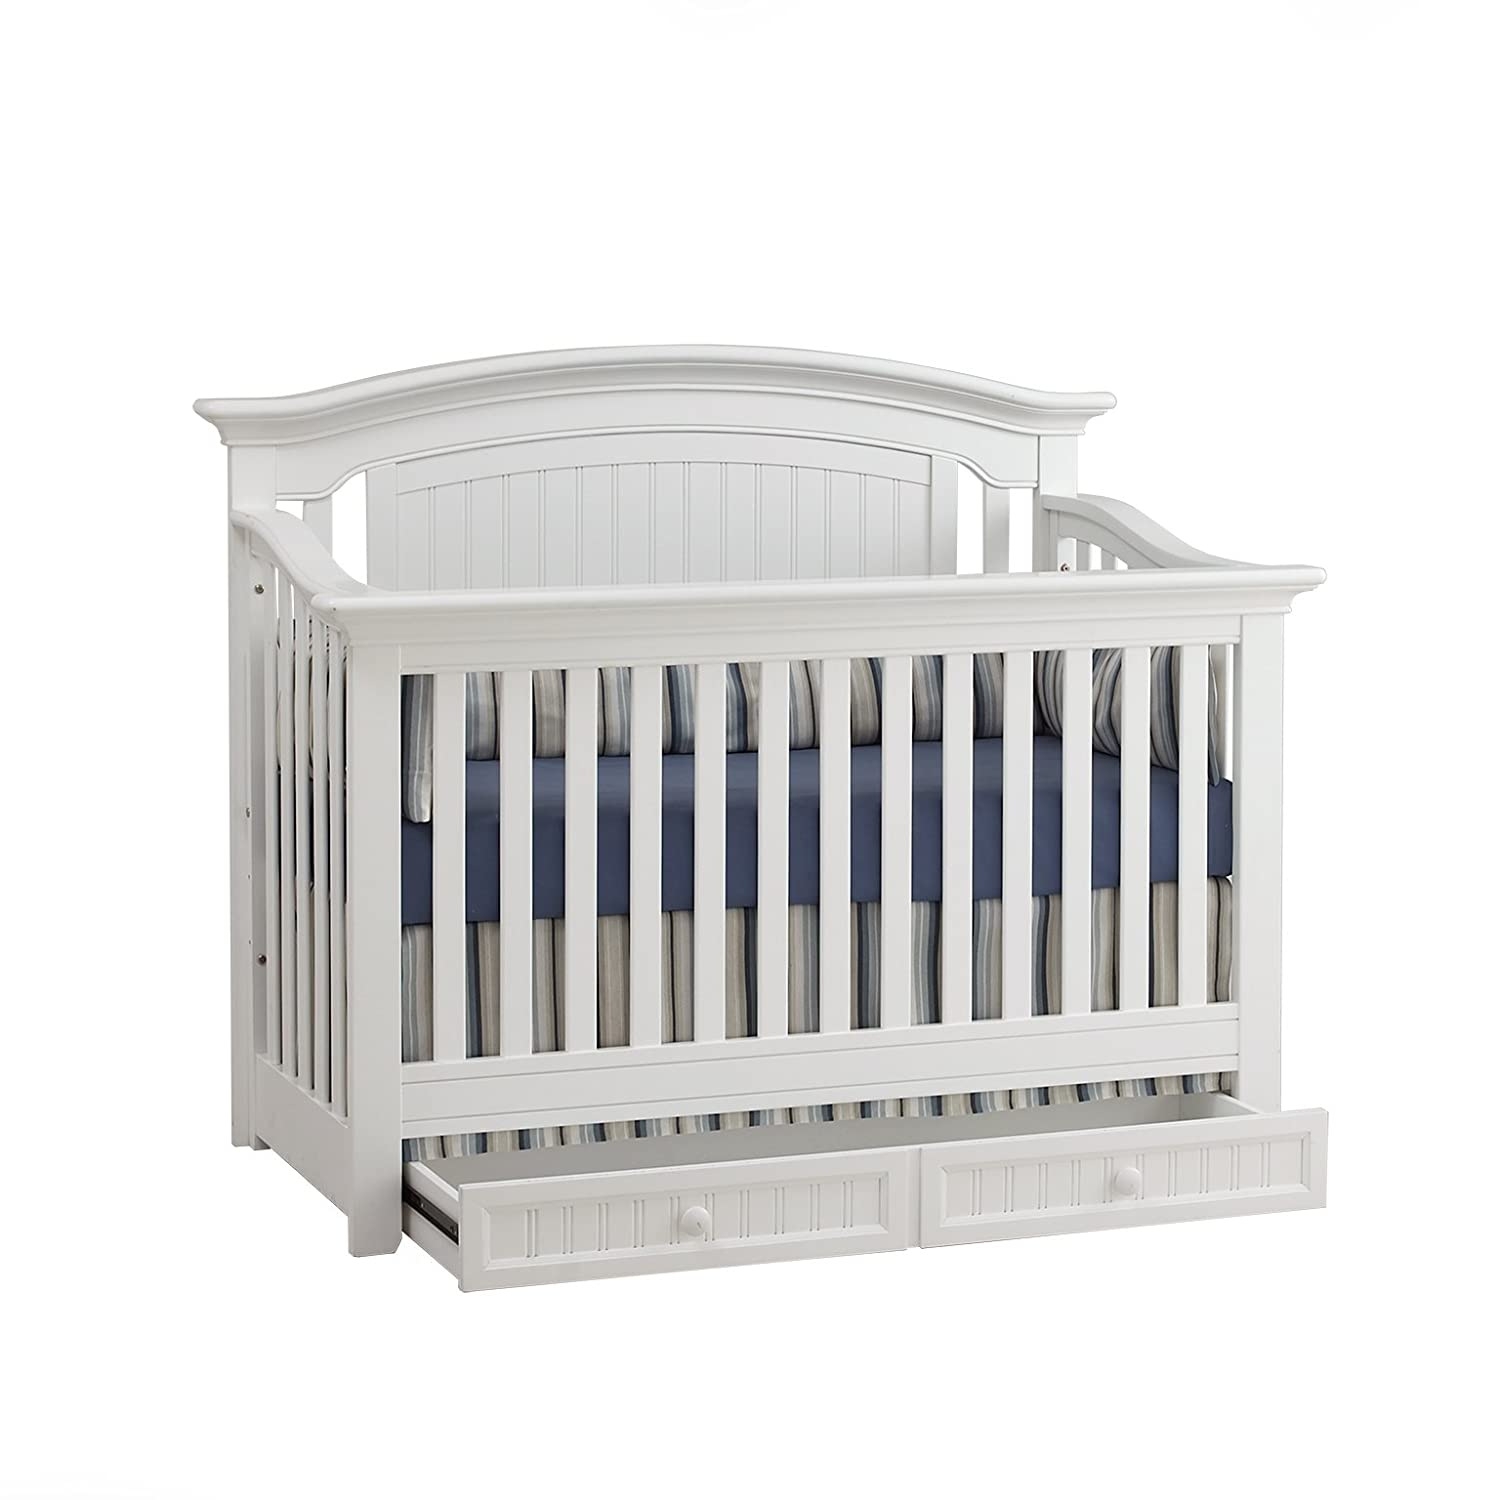 Suite Bebe Winchester 4 in 1 Convertible Crib White